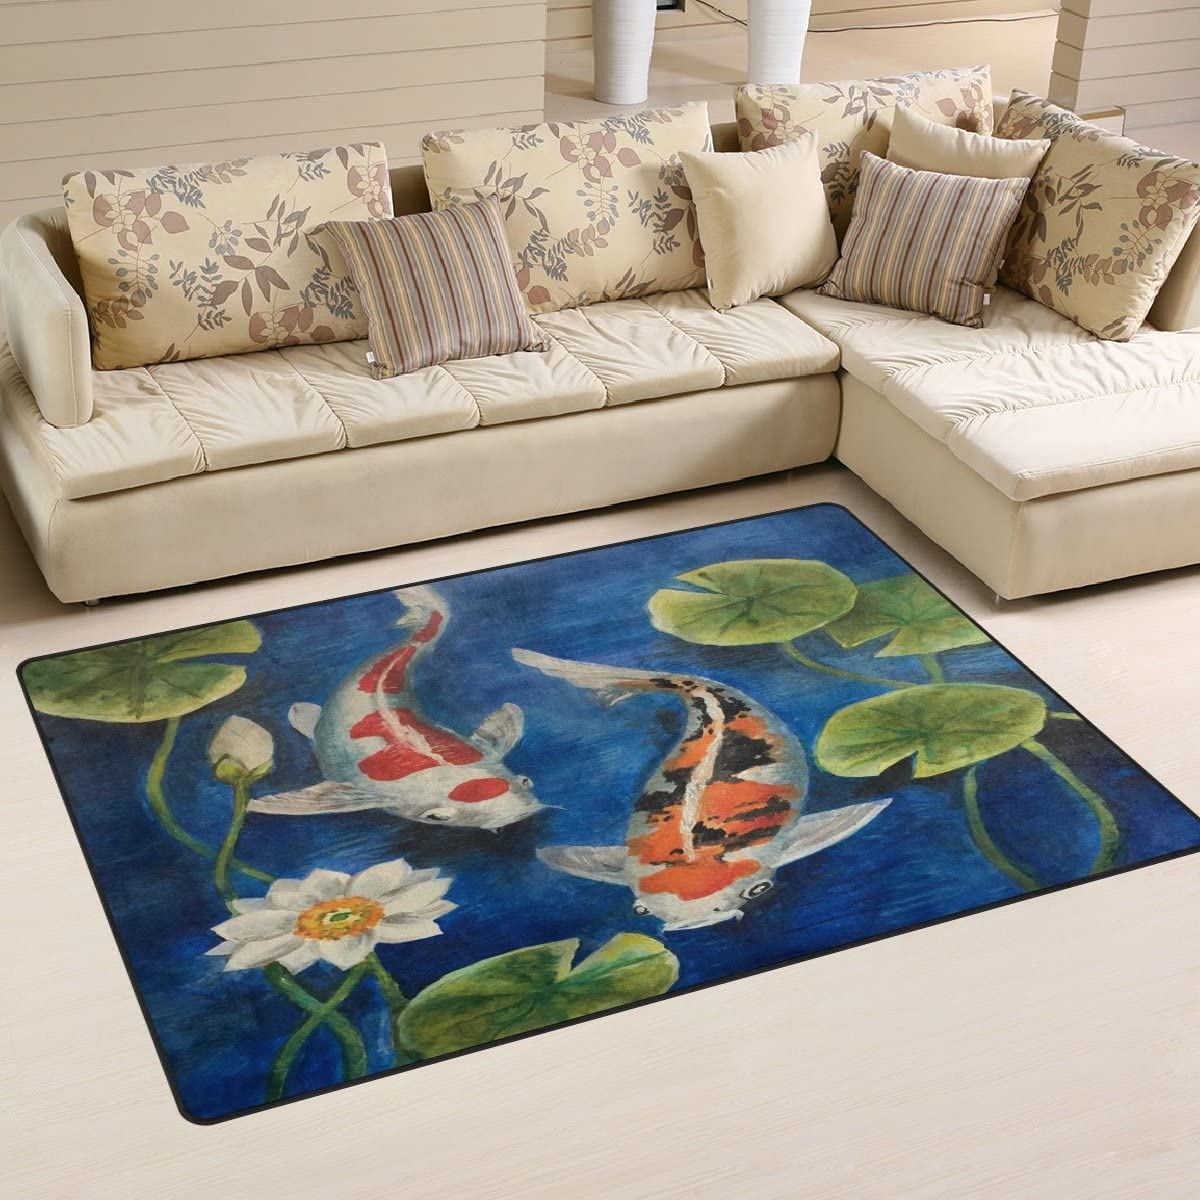 WOZO Colorful Koi Fish Pond Water Lily Area Rug Rugs Non-Slip Floor Mat Doormats Living Dining Room Bedroom Dorm 60 x 39 inches inches Home Decor